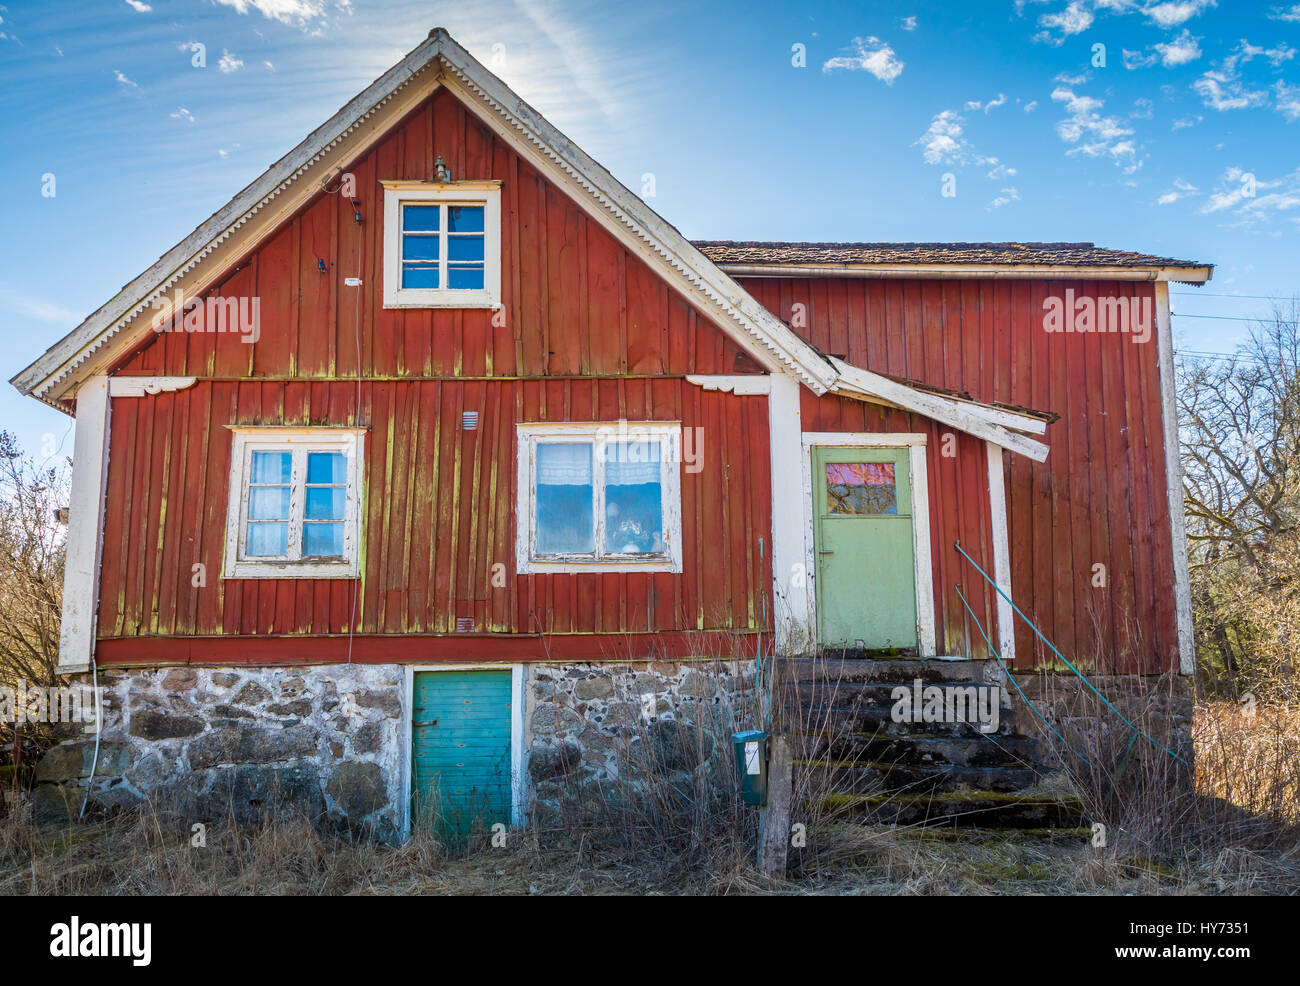 House on old farm the southern province of Blekinge in Sweden, near Kyrkhult. - Stock Image